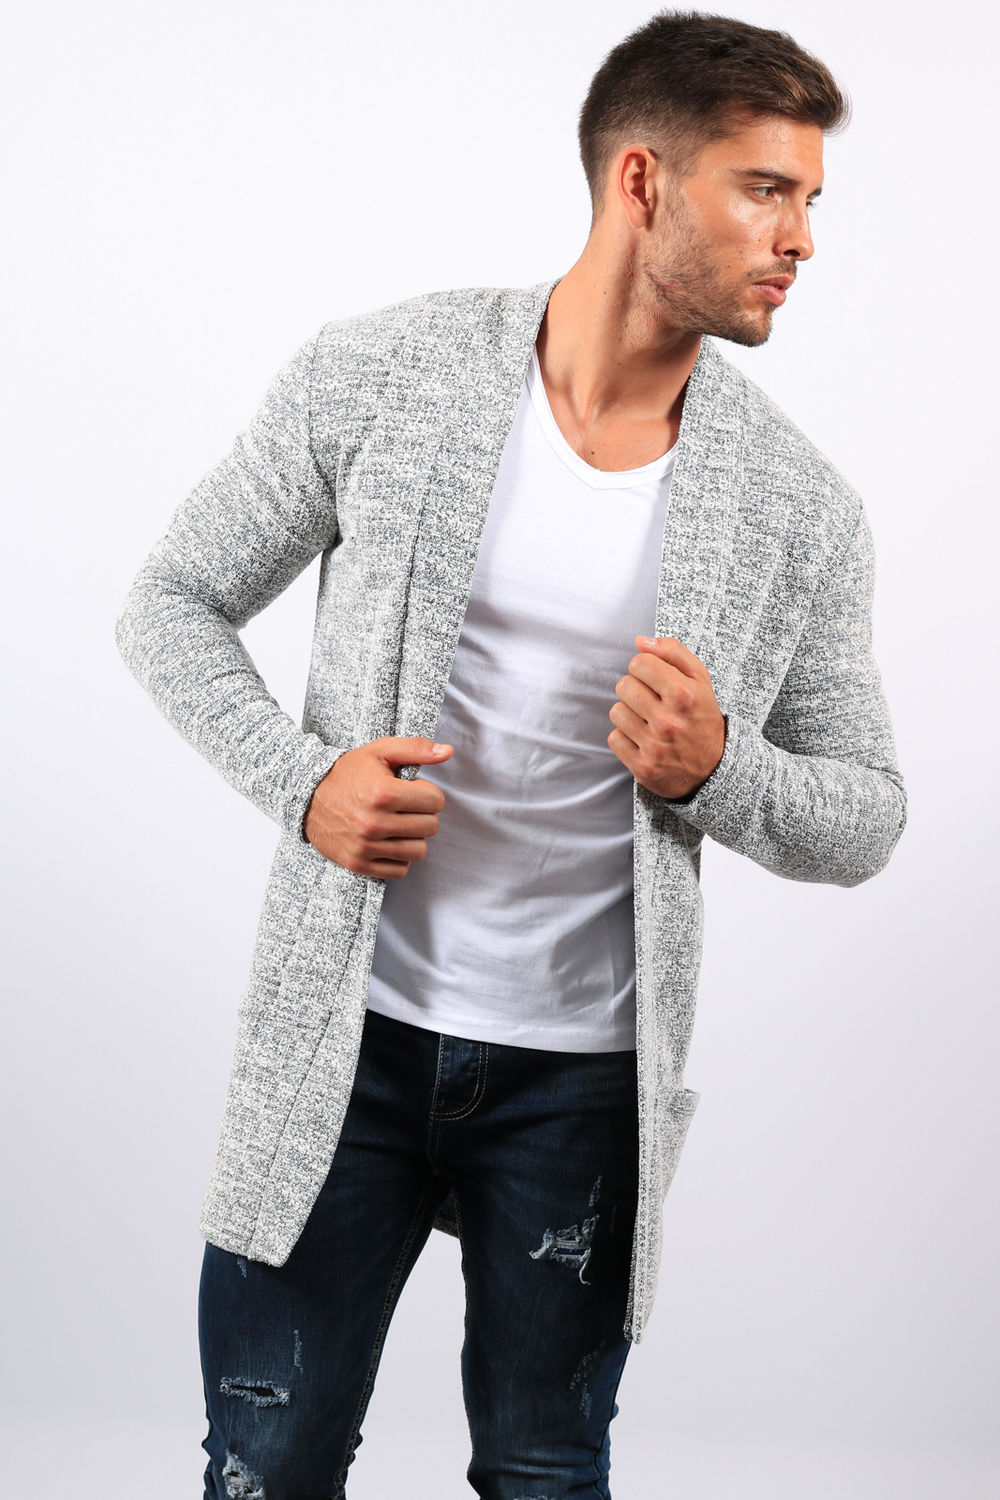 qualité de la marque fabrication habile magasin officiel Gilet homme long gris chiné 6002 B